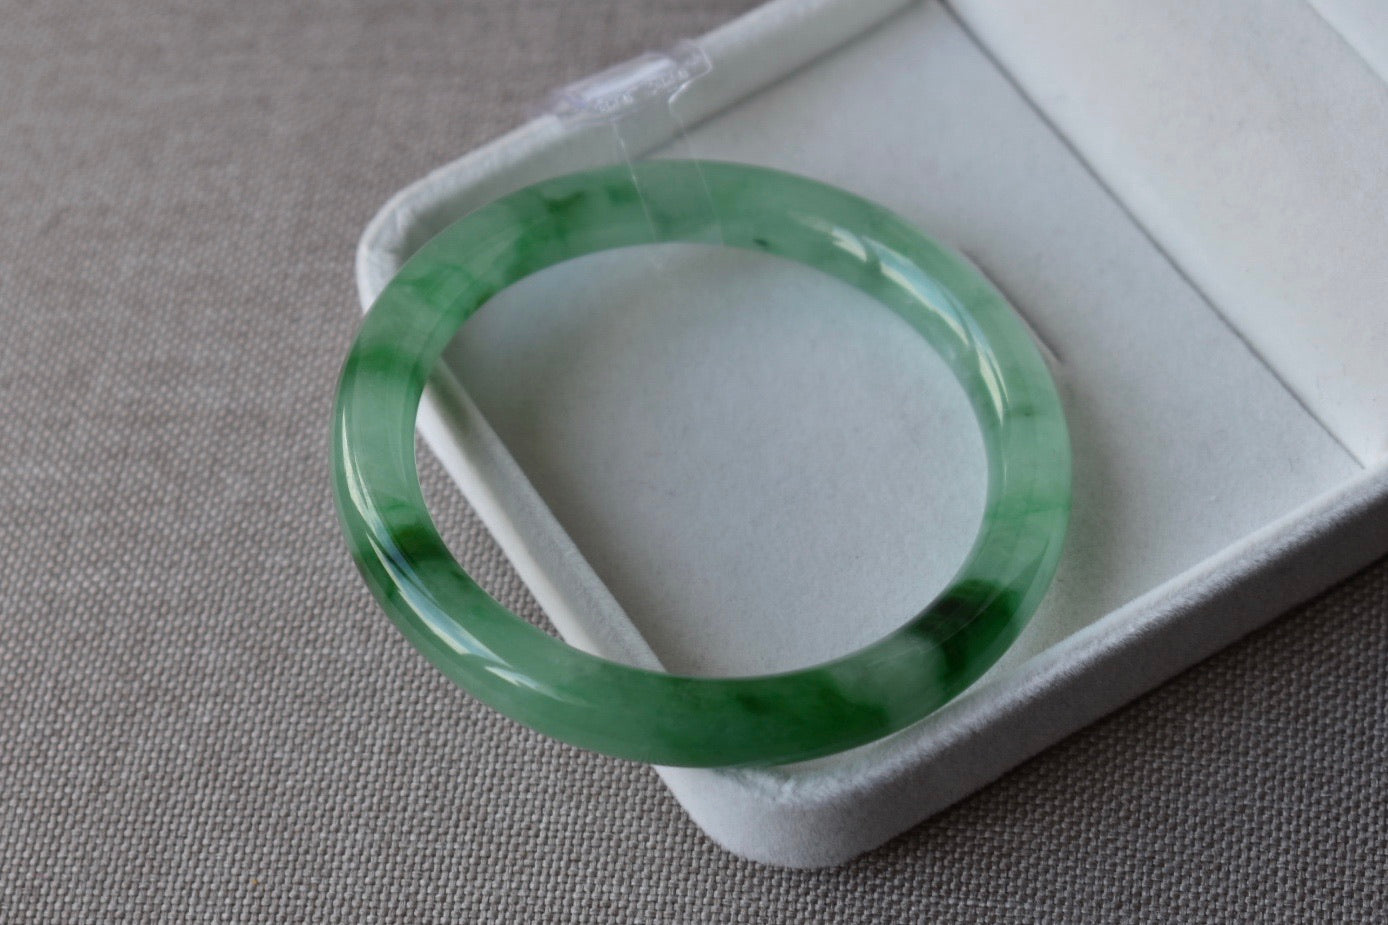 60.17mm Natural Translucent Light Green + Vivid Green + Black Jadeite Jade Round Bangle